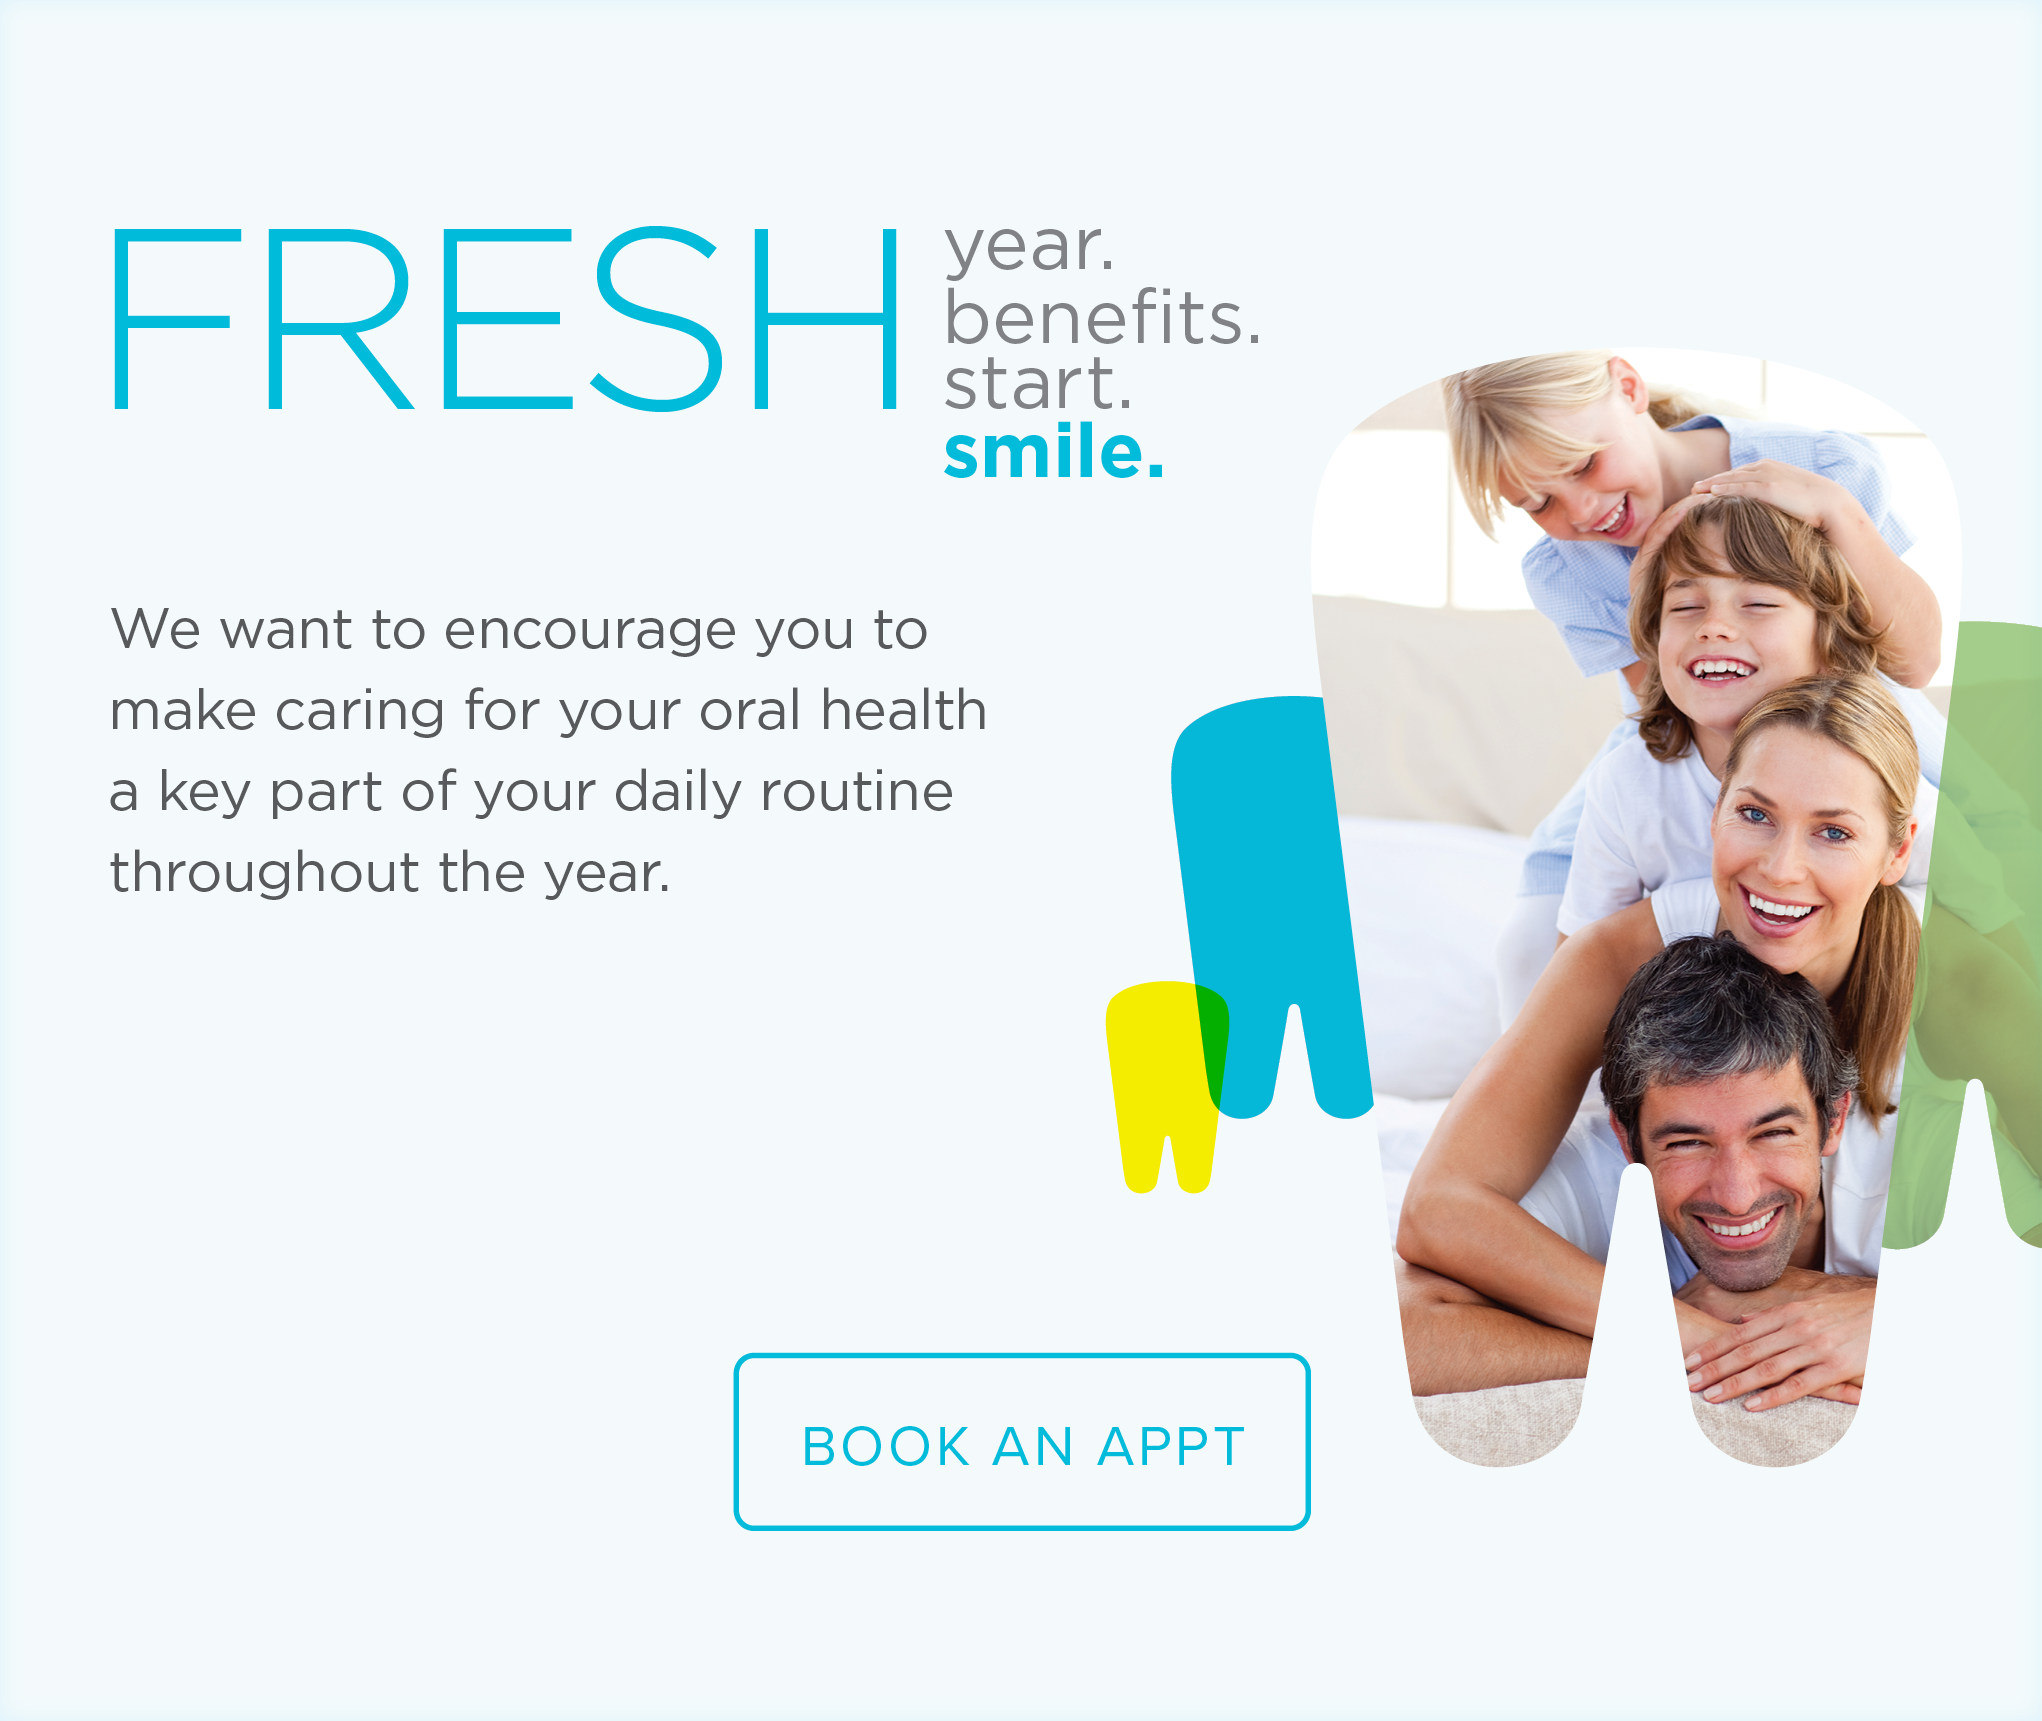 Lemmon Valley Dental Group - Make the Most of Your Benefits